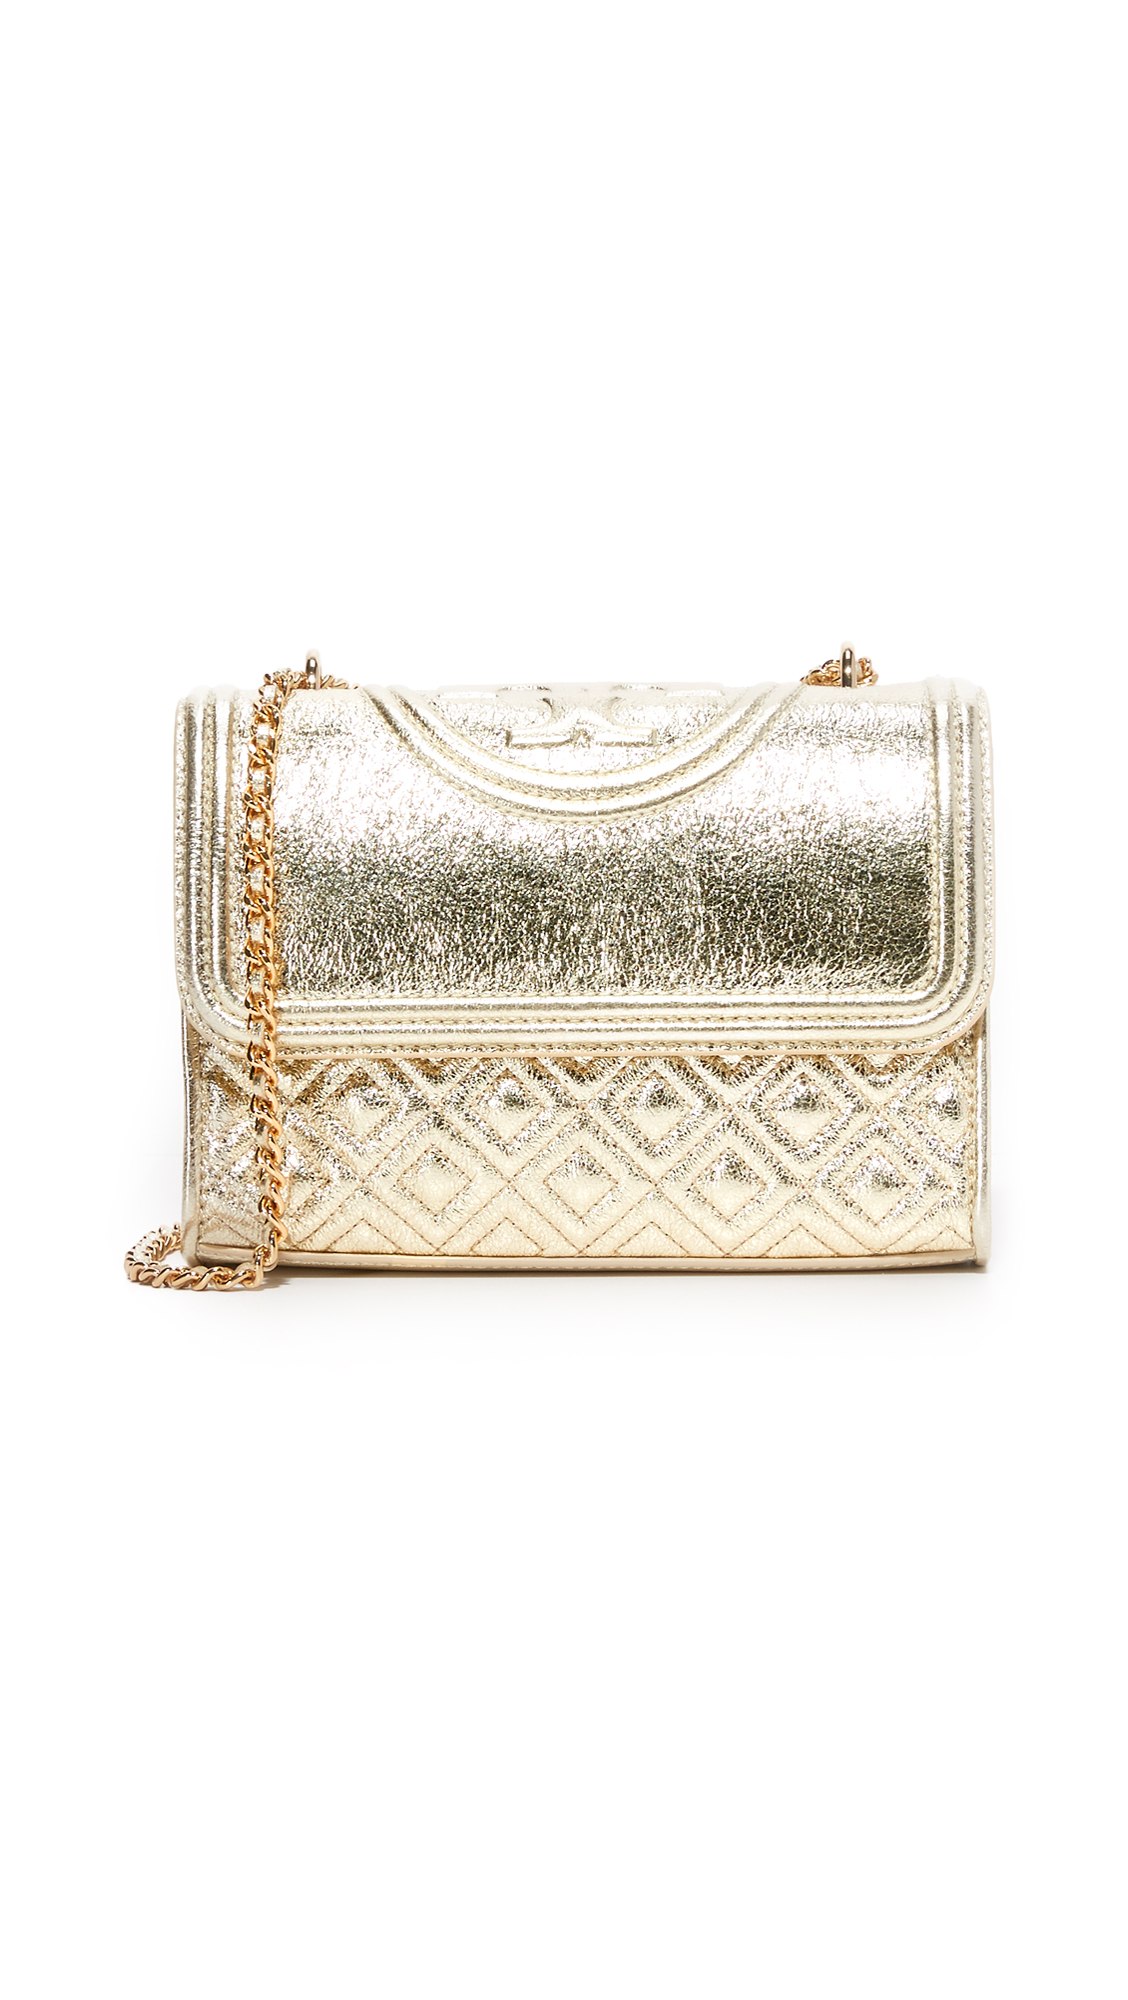 tory burch female tory burch small fleming convertible shoulder bag spark gold